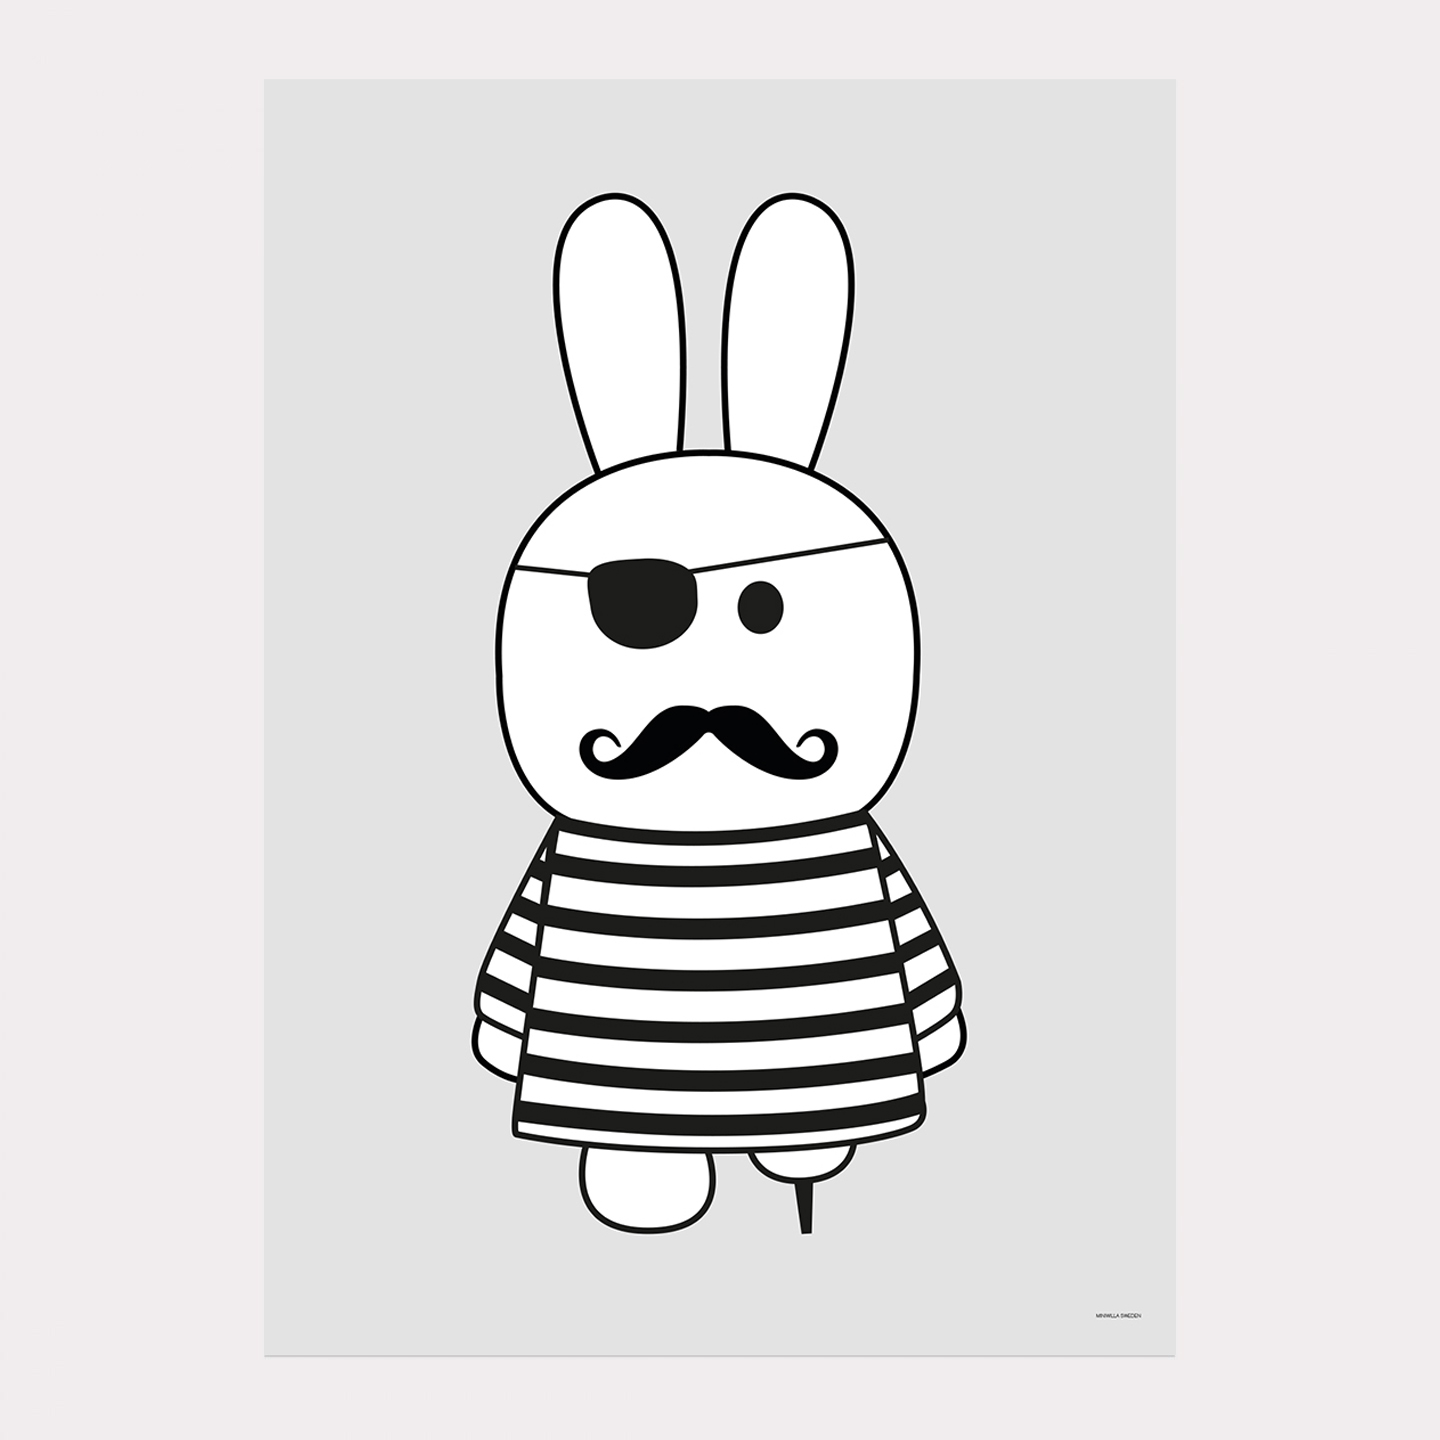 It is an image of Adorable Free Printable Black and White Images